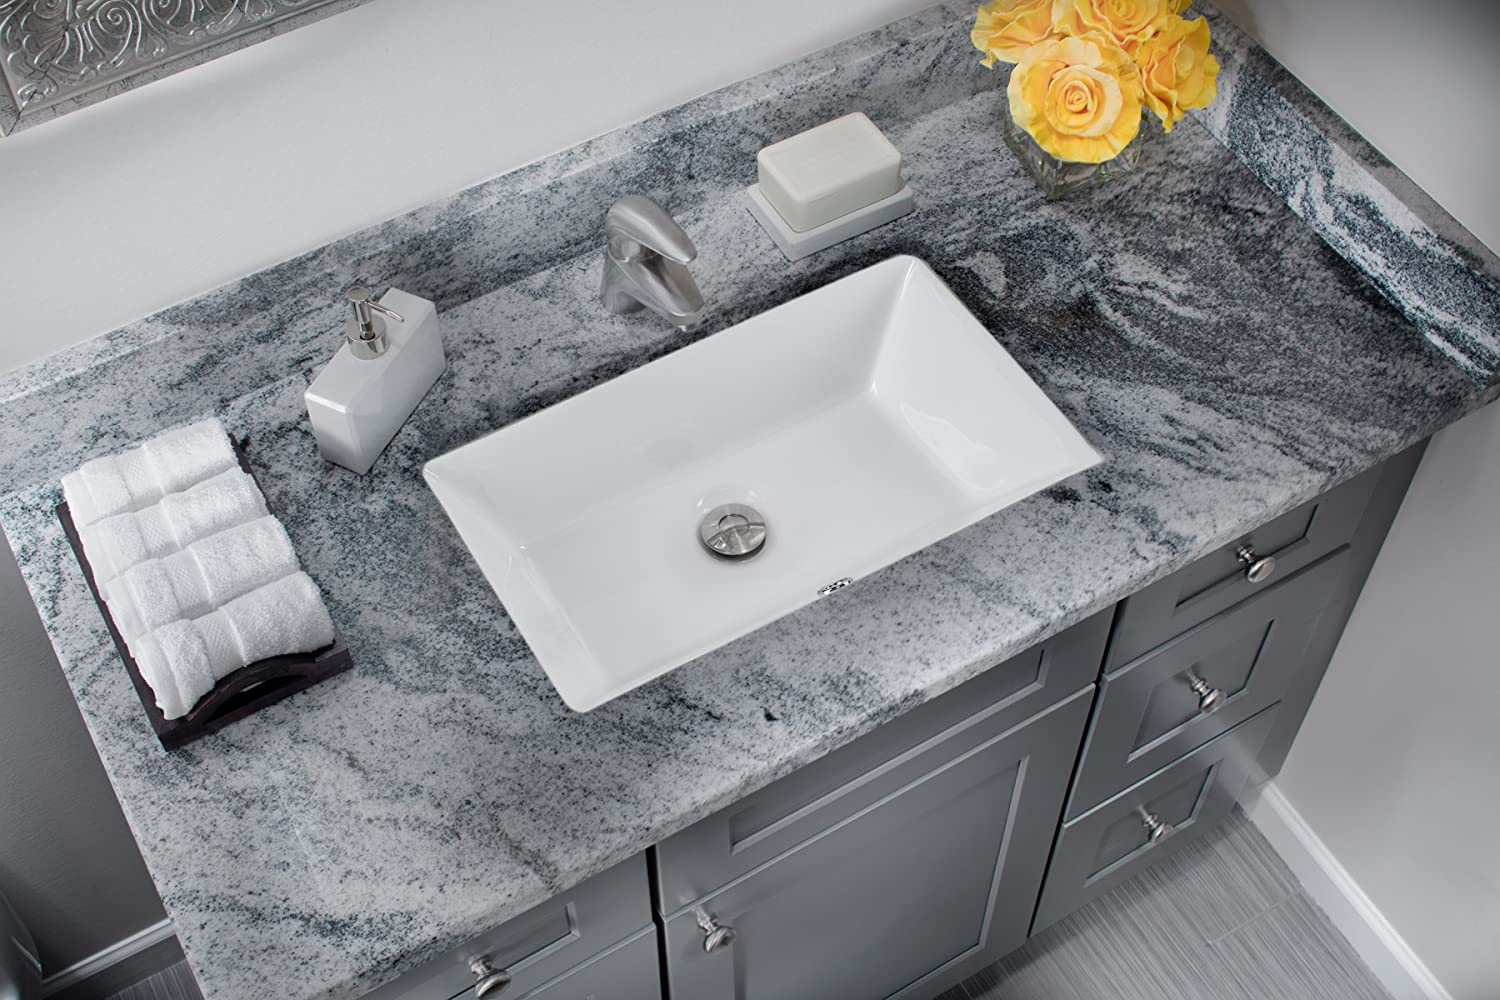 Bathroom available in 5 finishes vessel bathroom sinks msrp 425 - 1181cbw 18 X11 White Rectangular Porcelain Undermount Bathroom Sink Vanity Sinks Amazon Com